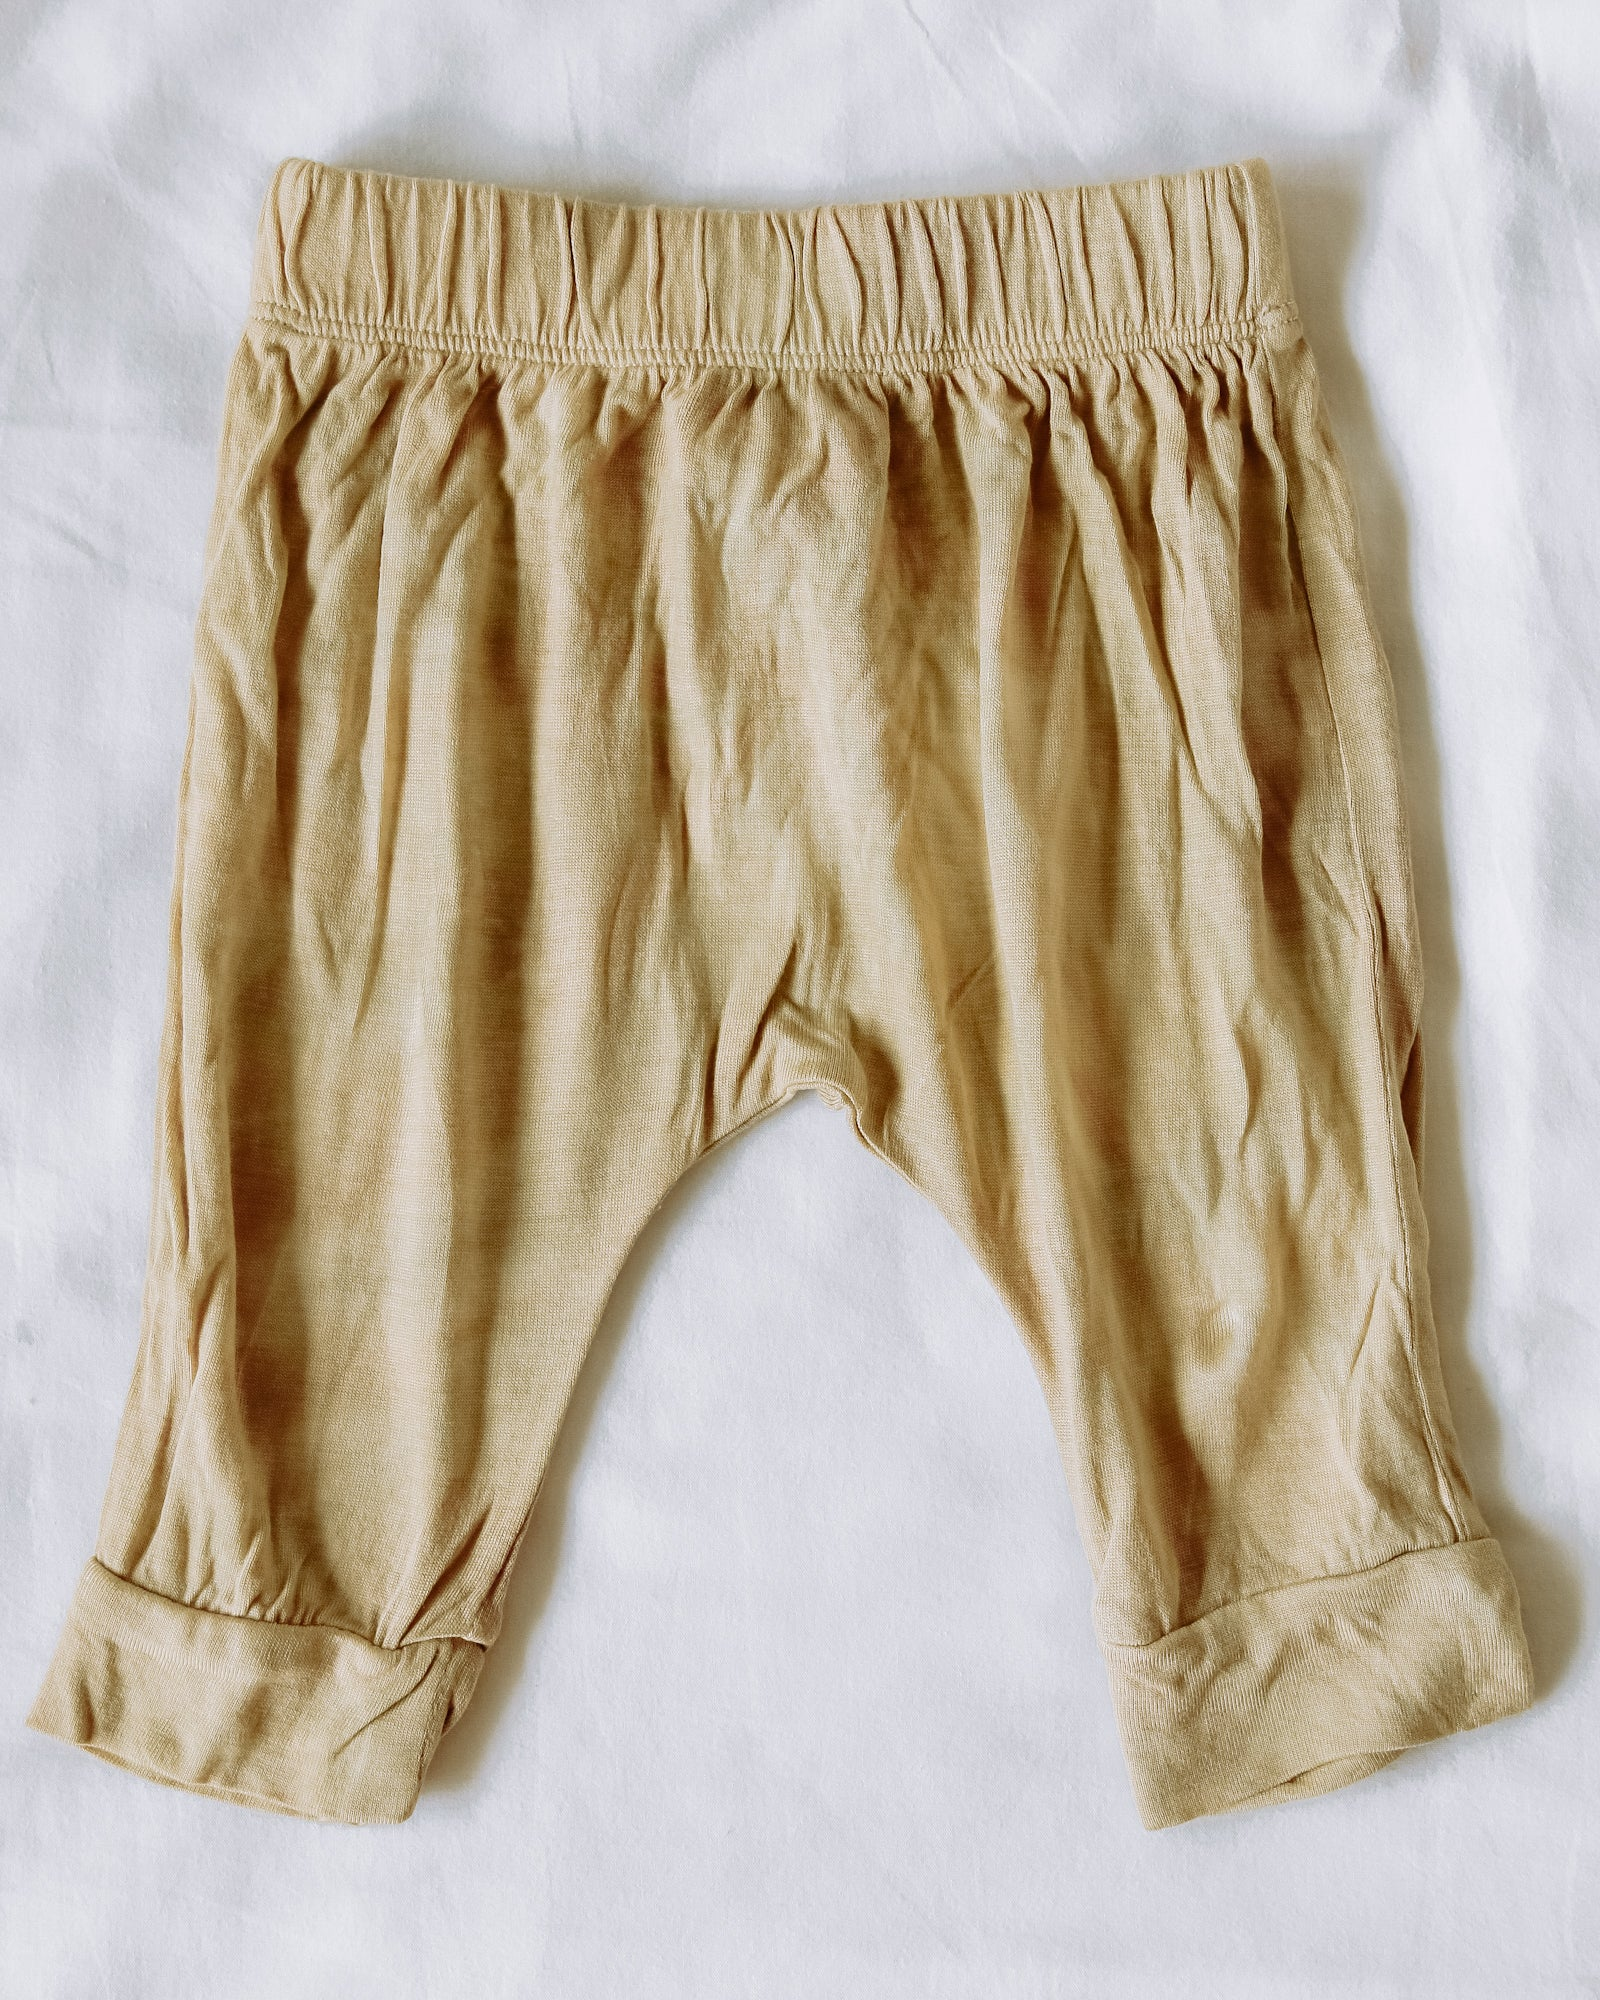 Honey Organic Bamboo Baby Pants Tie-Dye